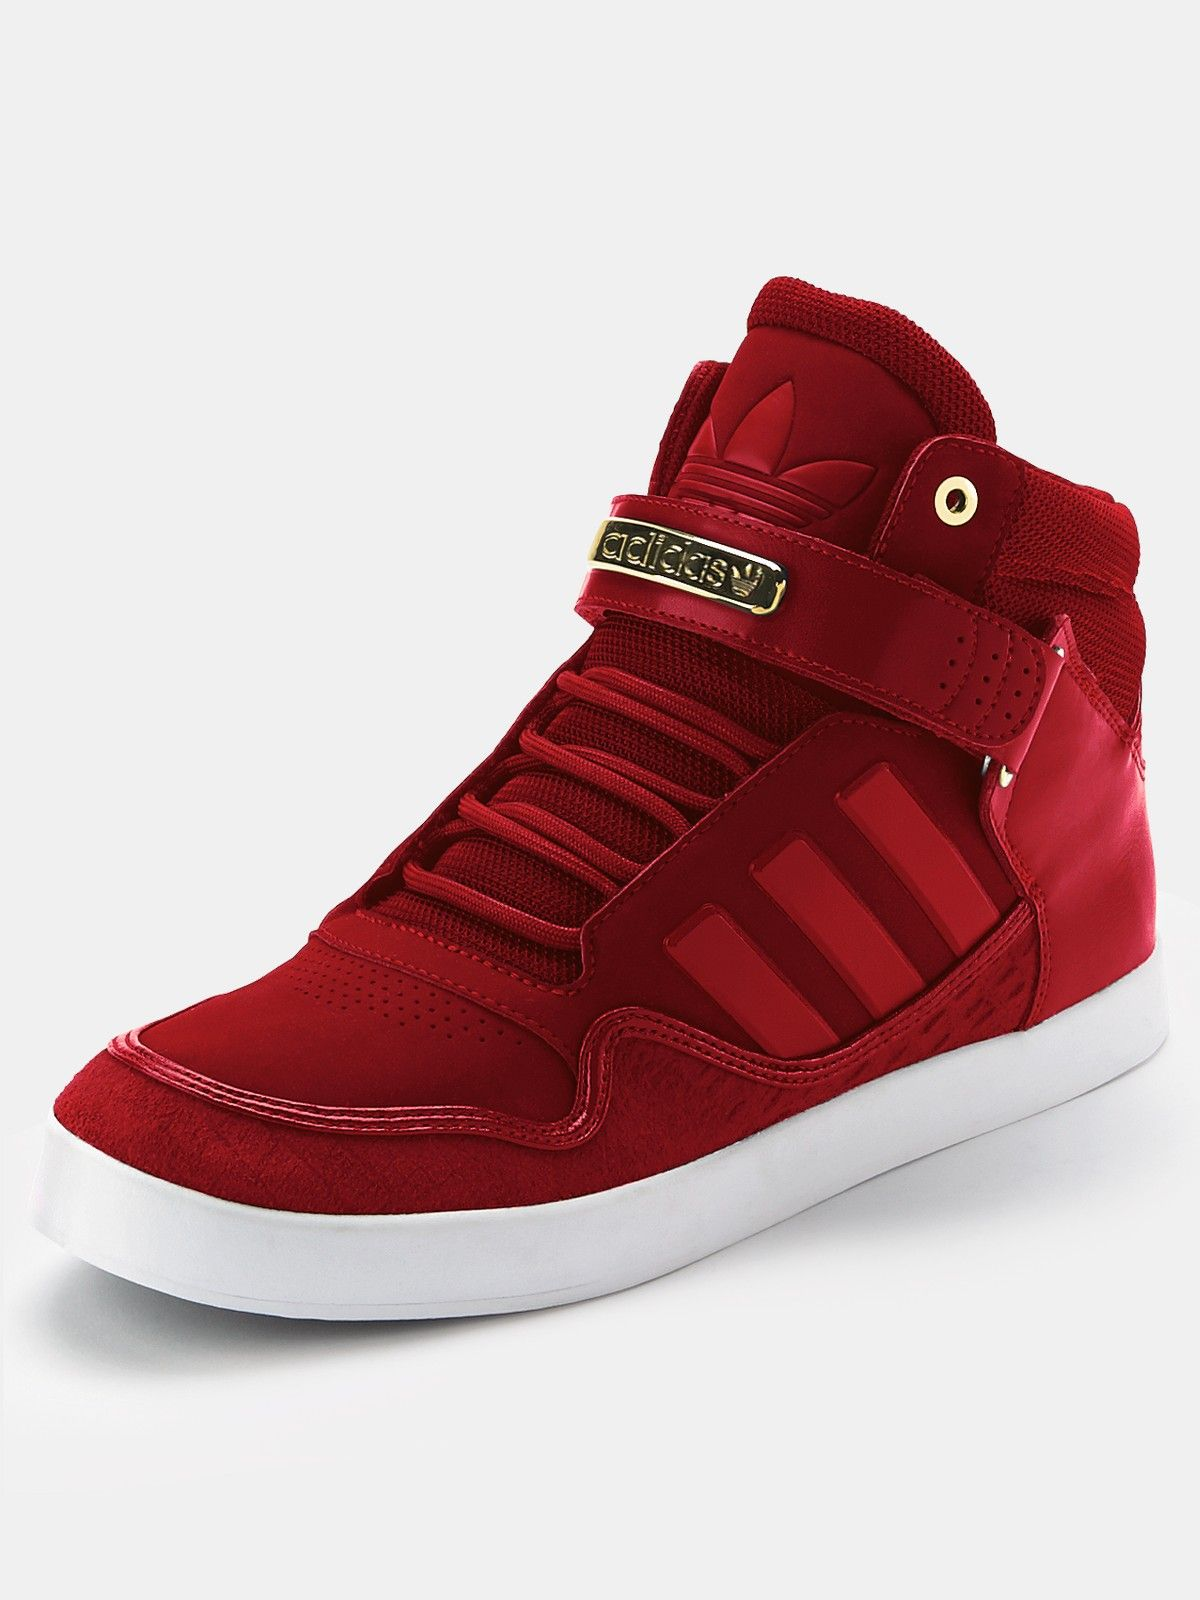 adidas originals adirise 2.0 hi top mens trainers nz